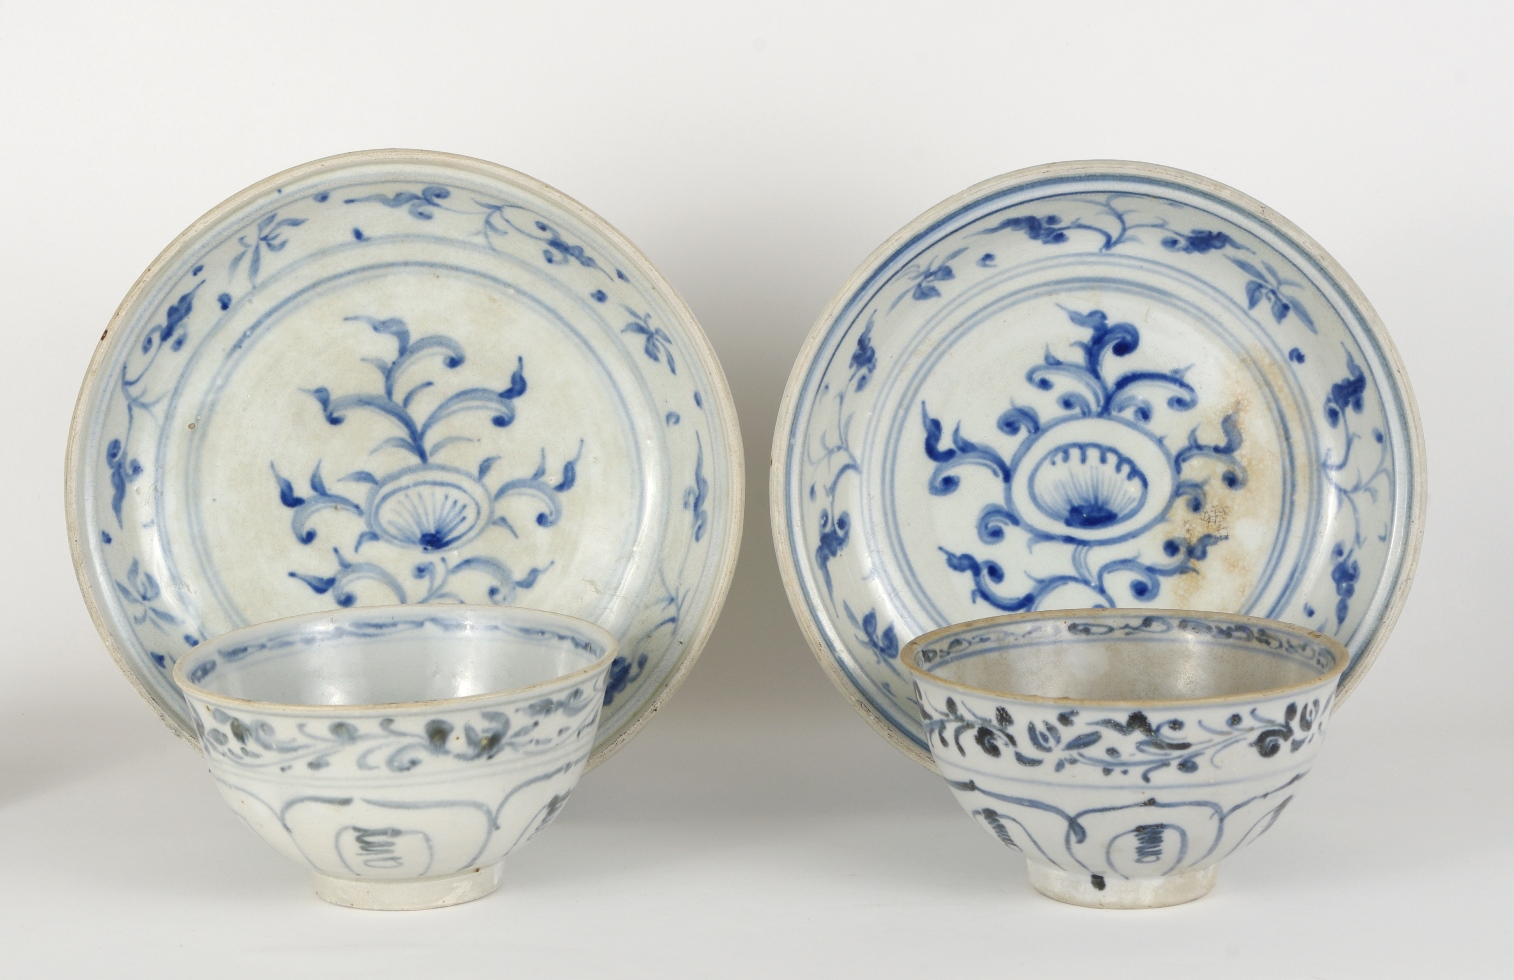 View 8: Two Blue and White Serving Dishes from the Hoi An Hoard, c. 1500